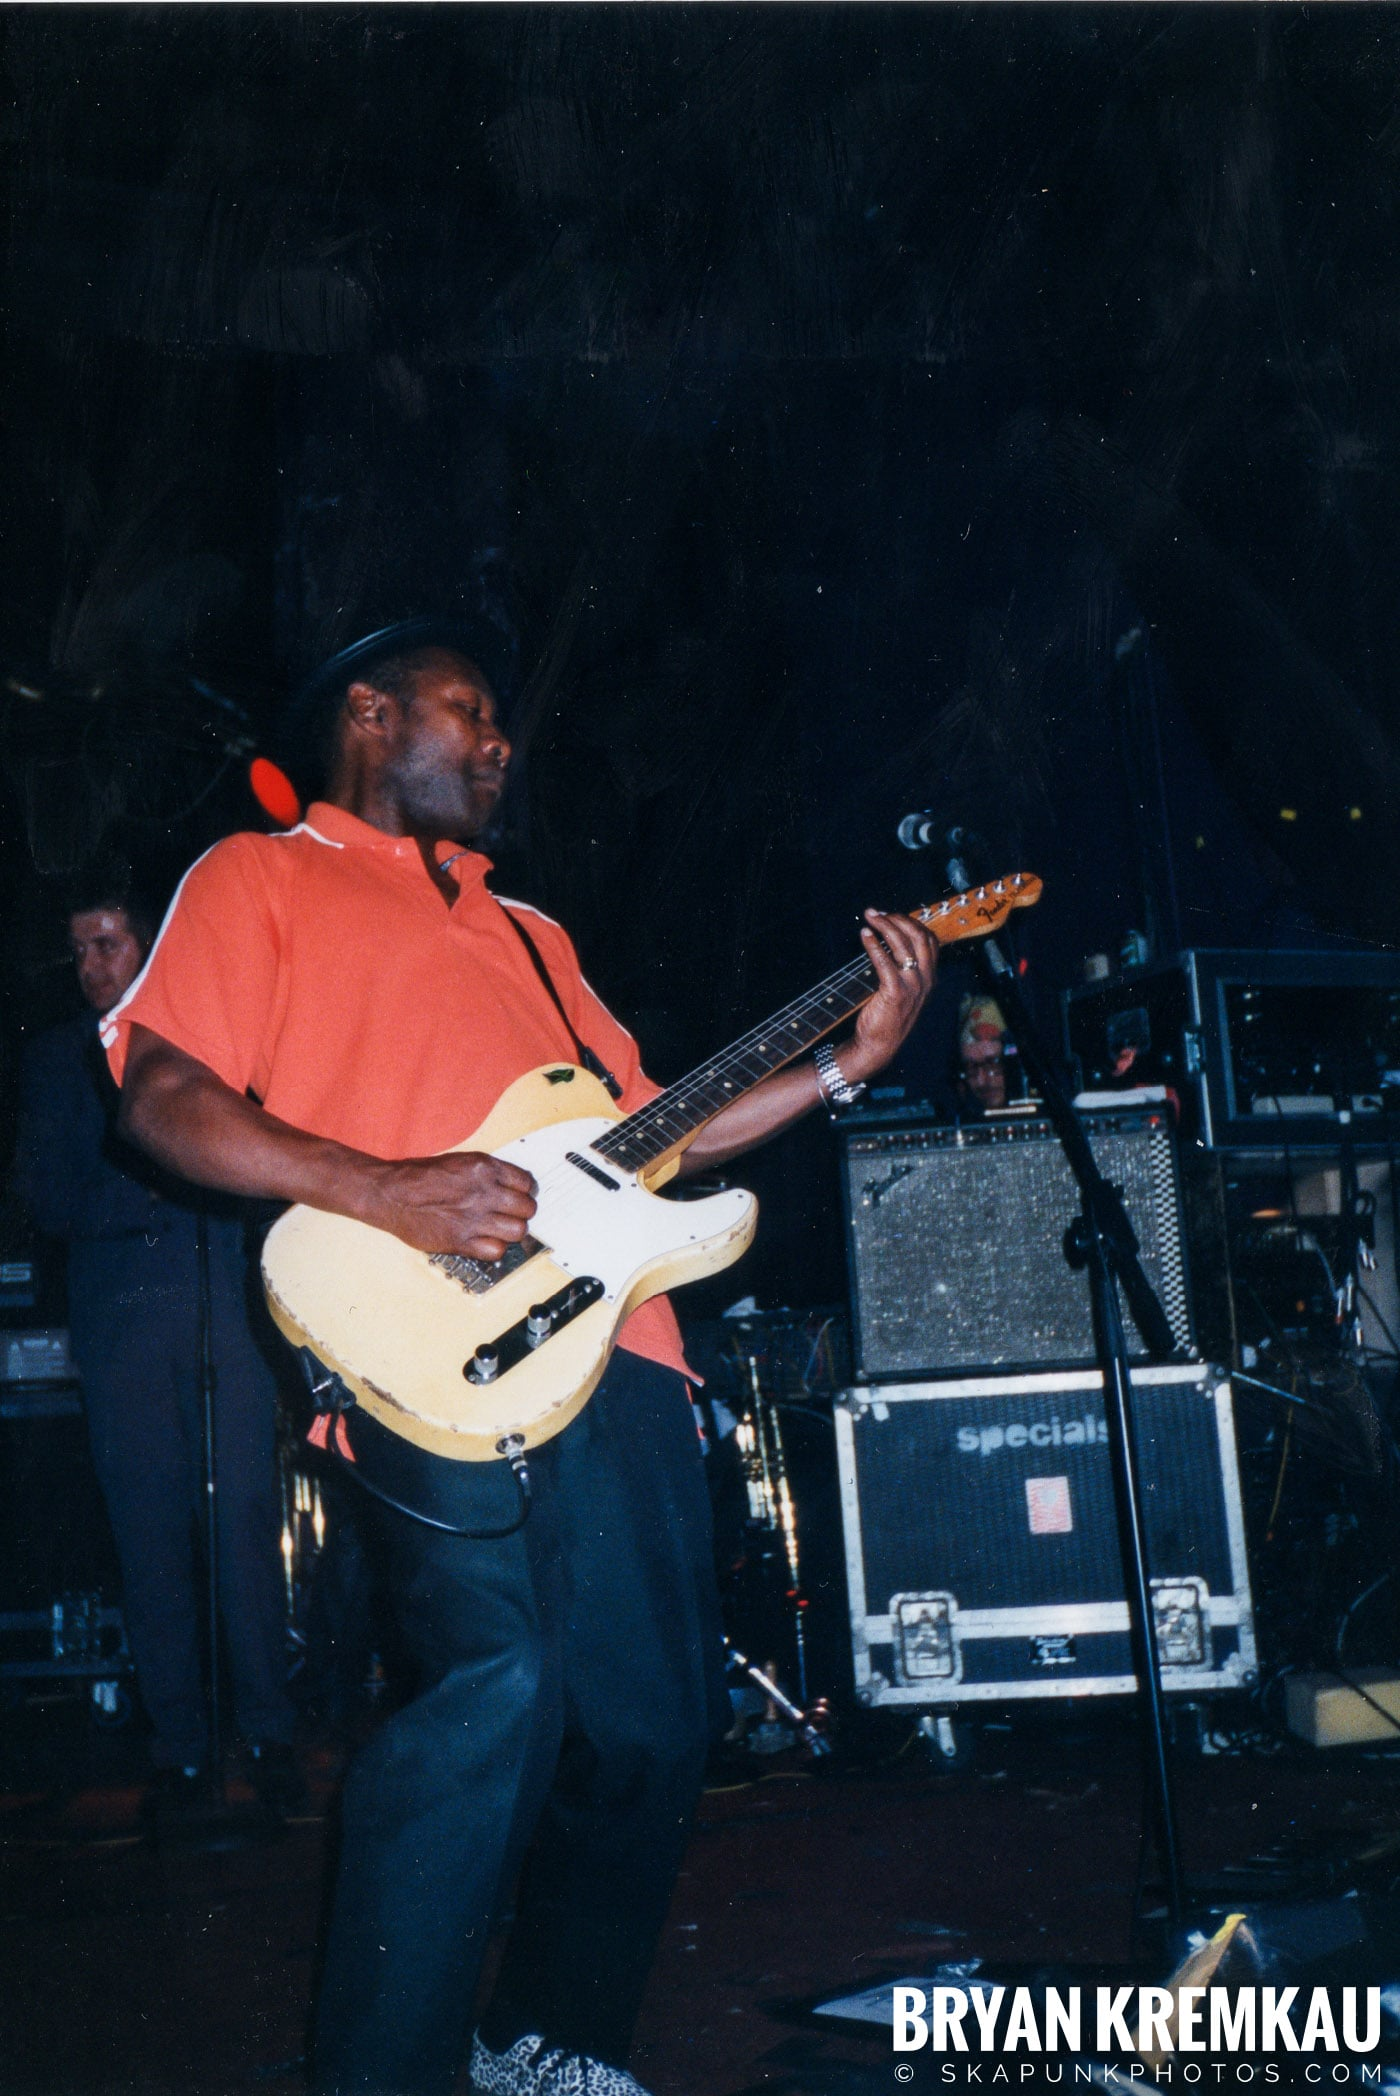 The Specials @ 7 Willow St, Port Chester, NY - 6.5.98 (12)